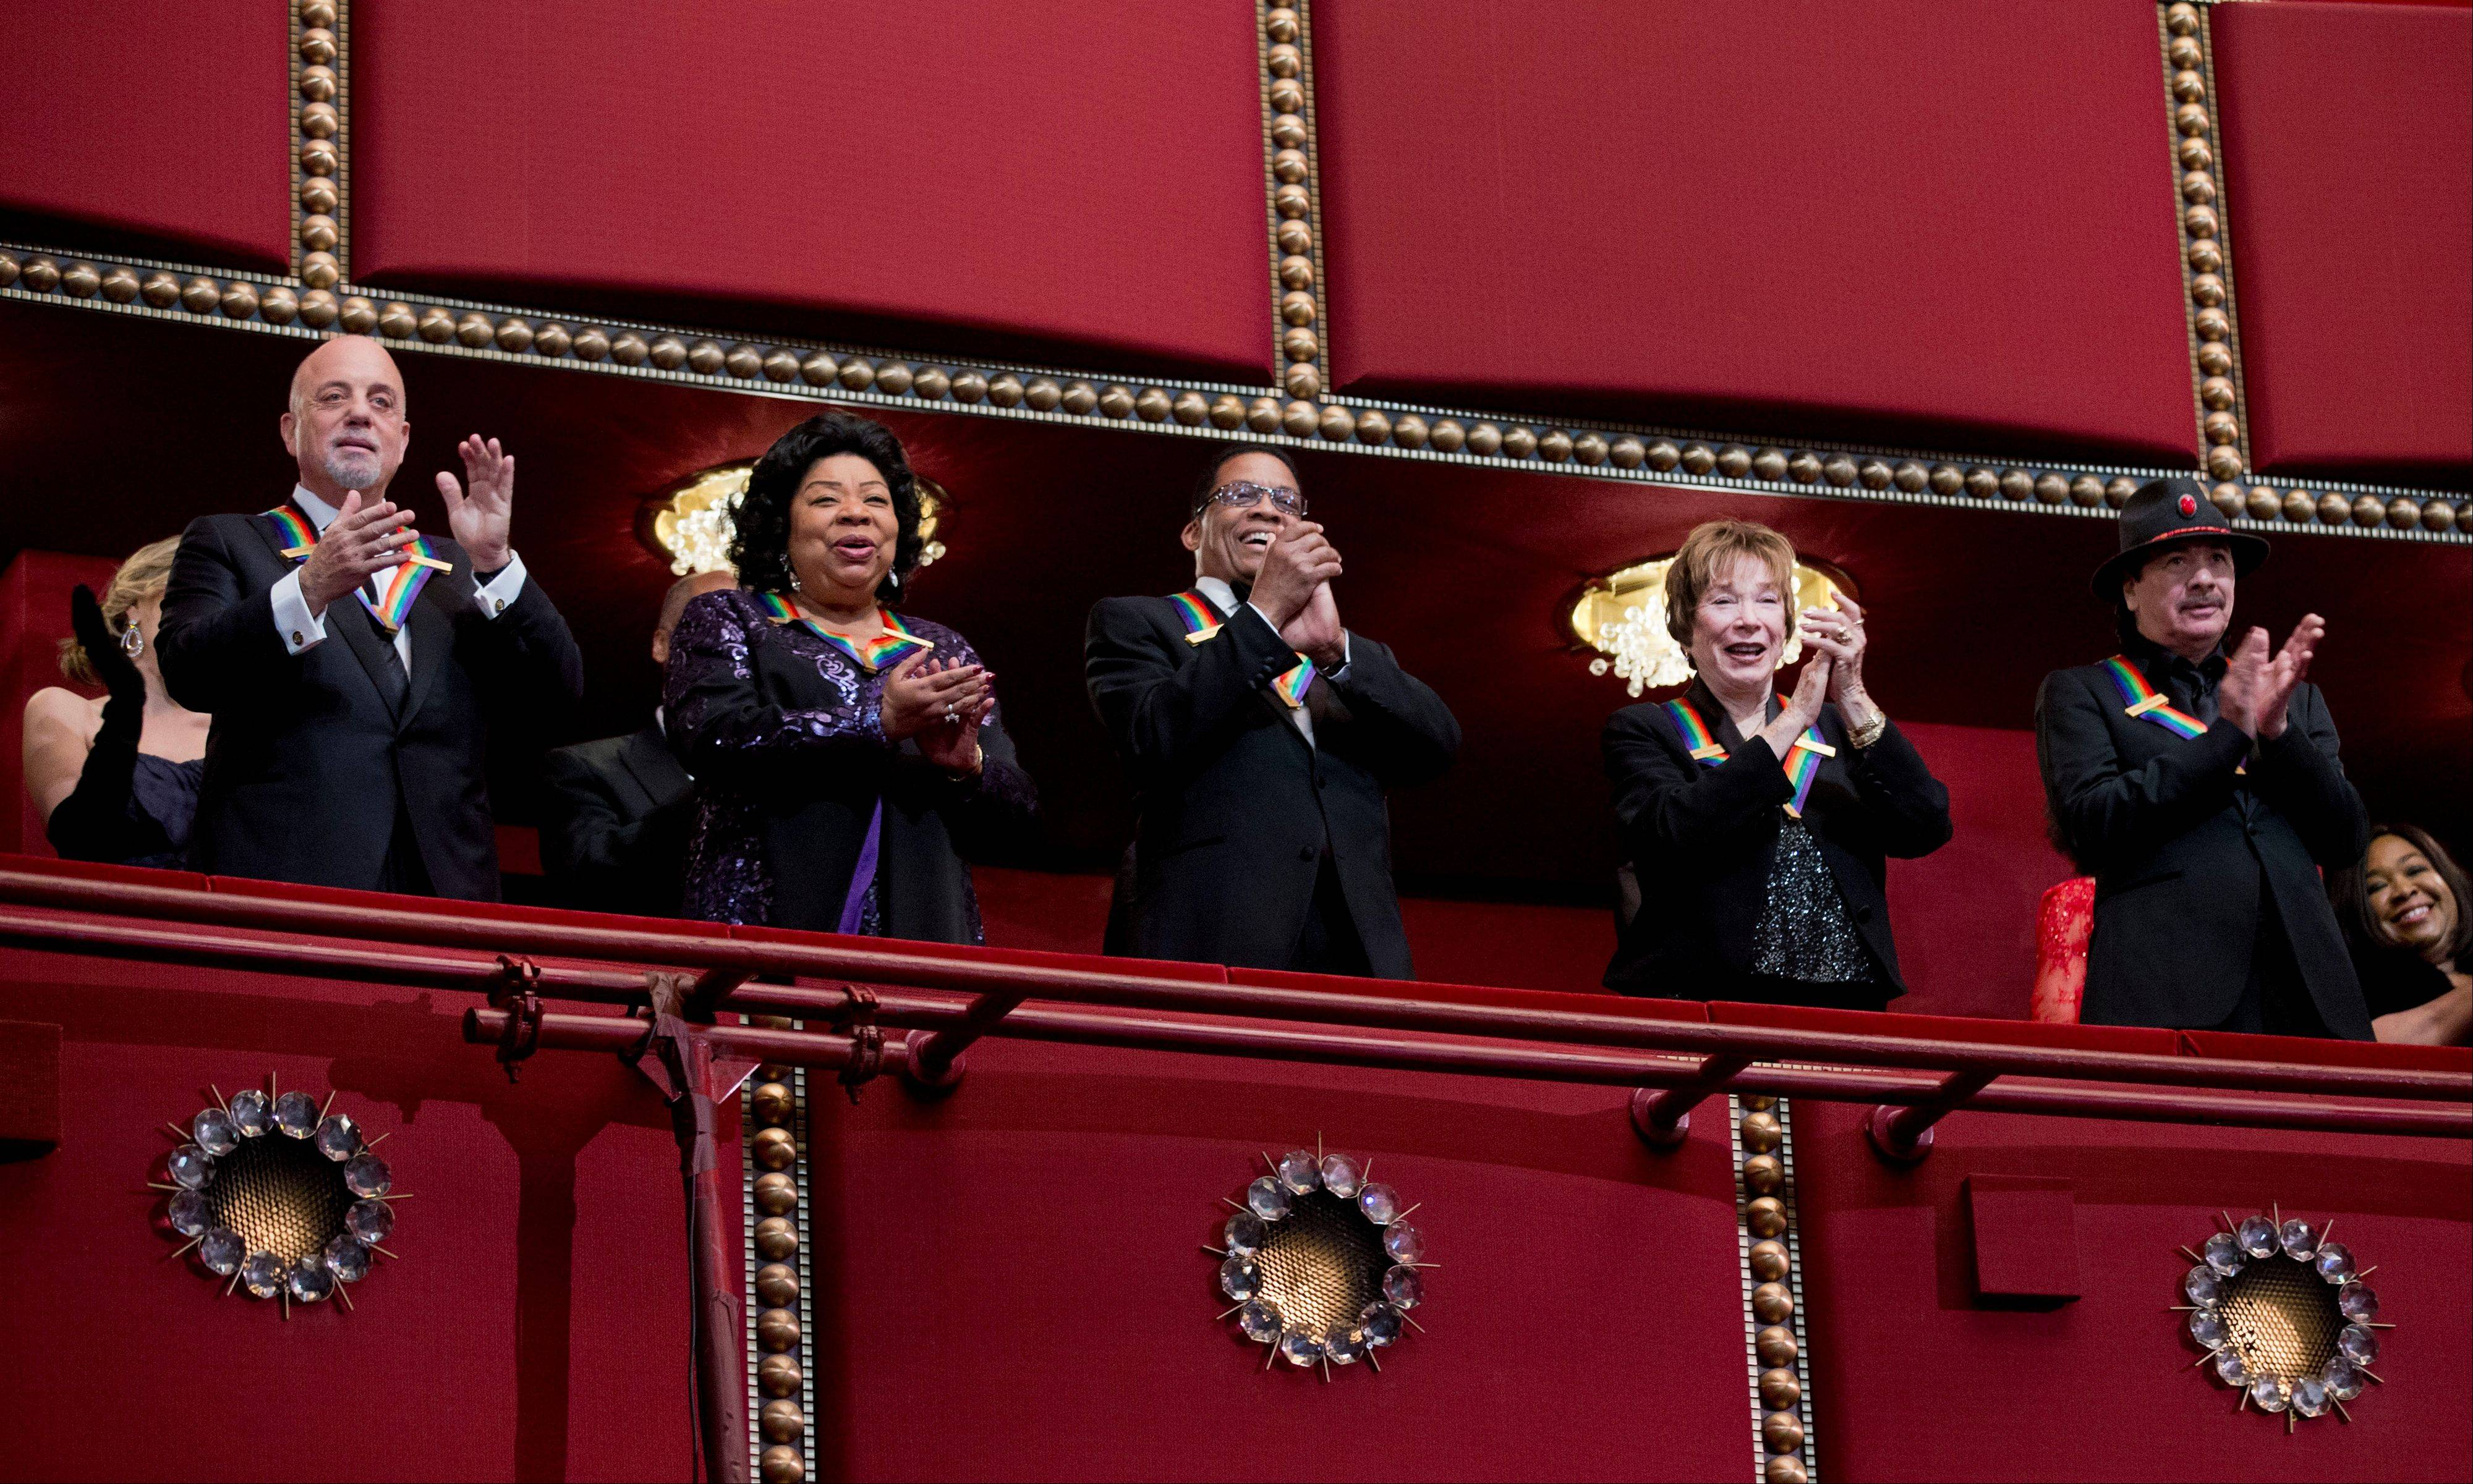 The recipients of the 2013 Kennedy Center Honors, from left, are Billy Joel, Martina Arroyo, Herbie Hancock, Shirley MacLaine and Carlos Santana. They were honored Sunday in Washington.